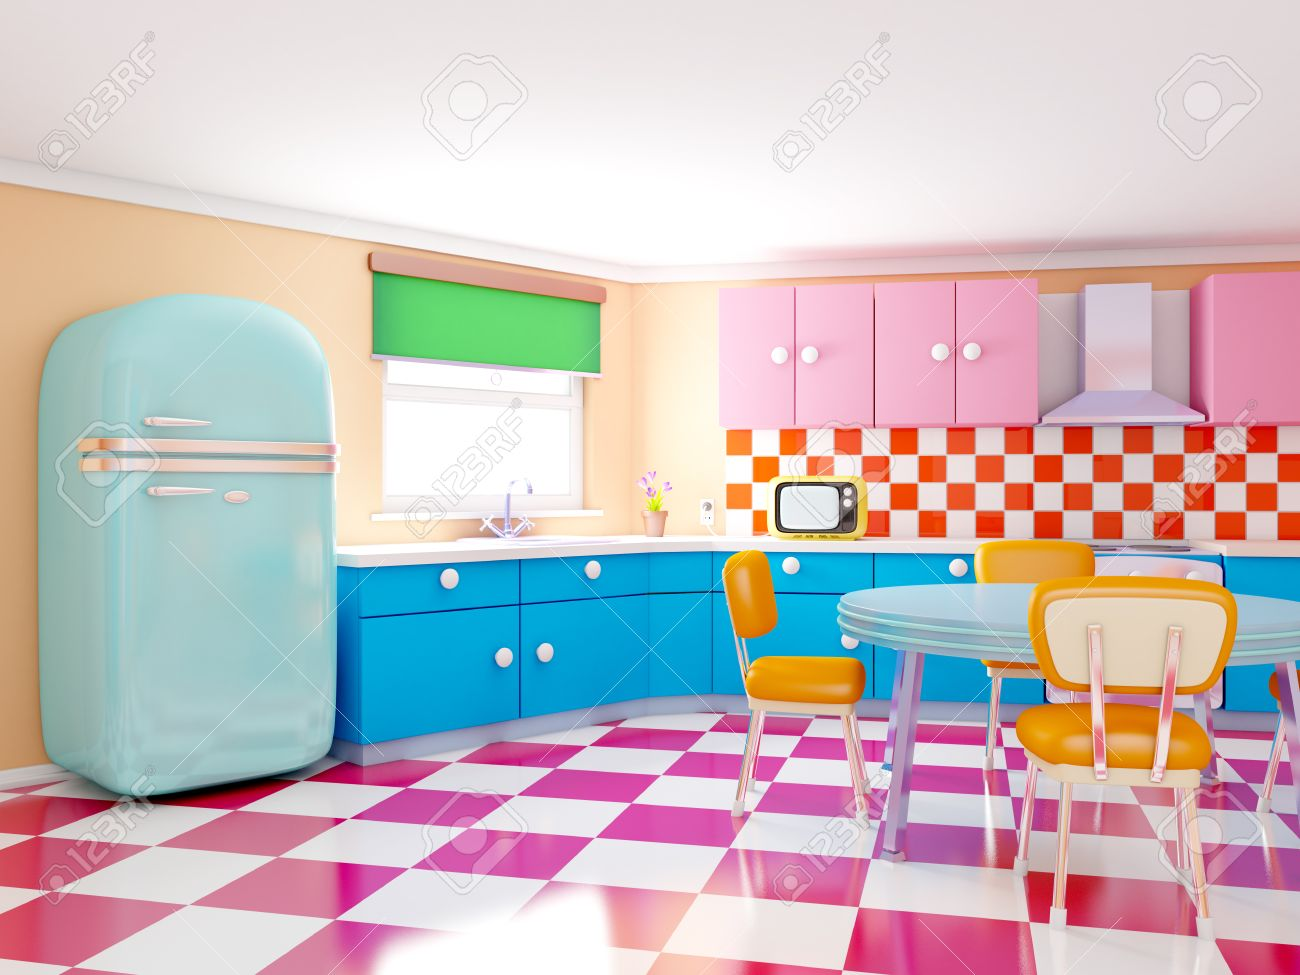 retro kitchen in cartoon style with checkered floor 3d illustration